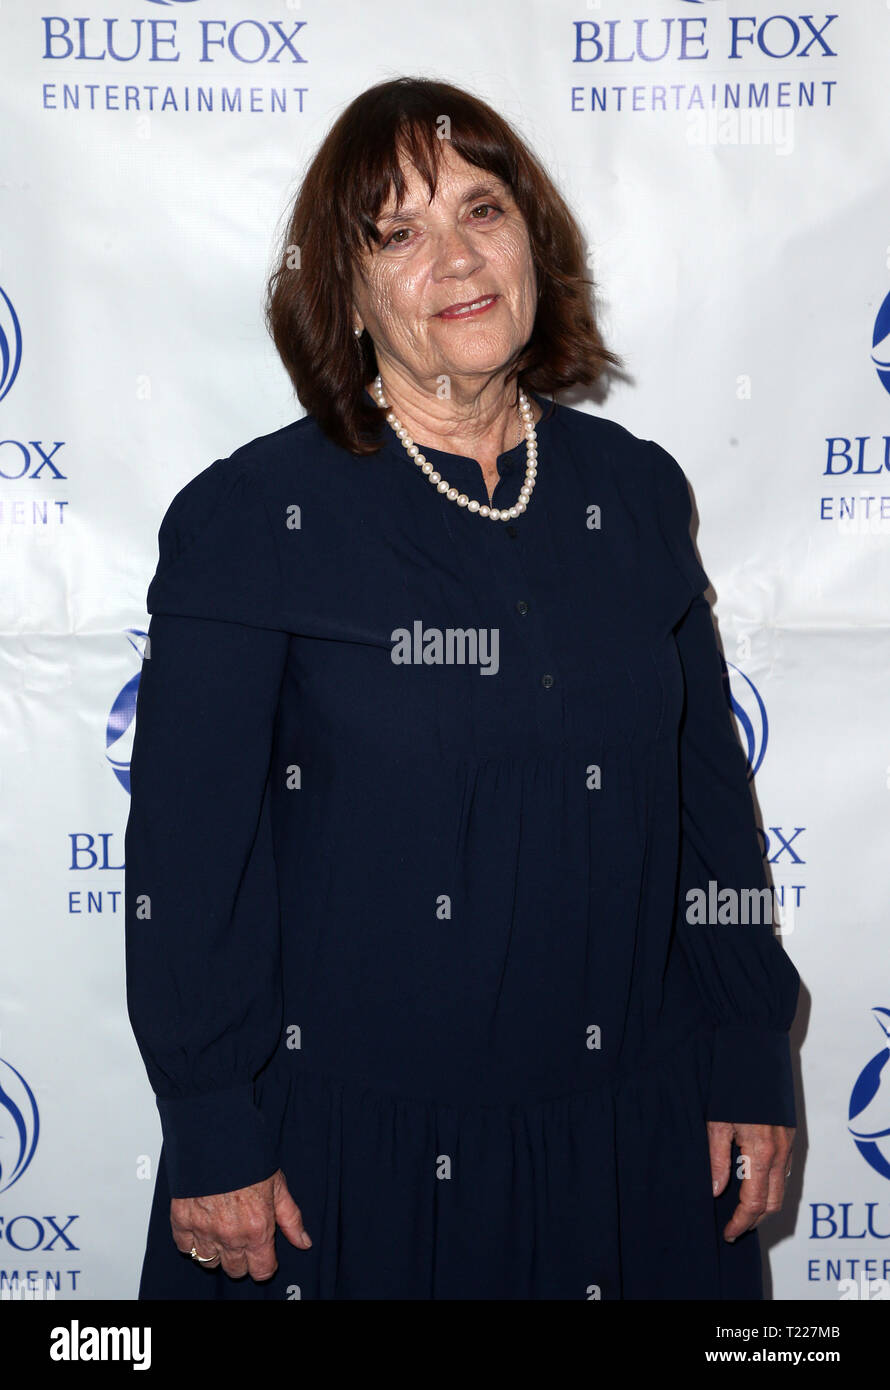 Saint Judy' Los Angeles Premiere - Arrivals Featuring: Judy